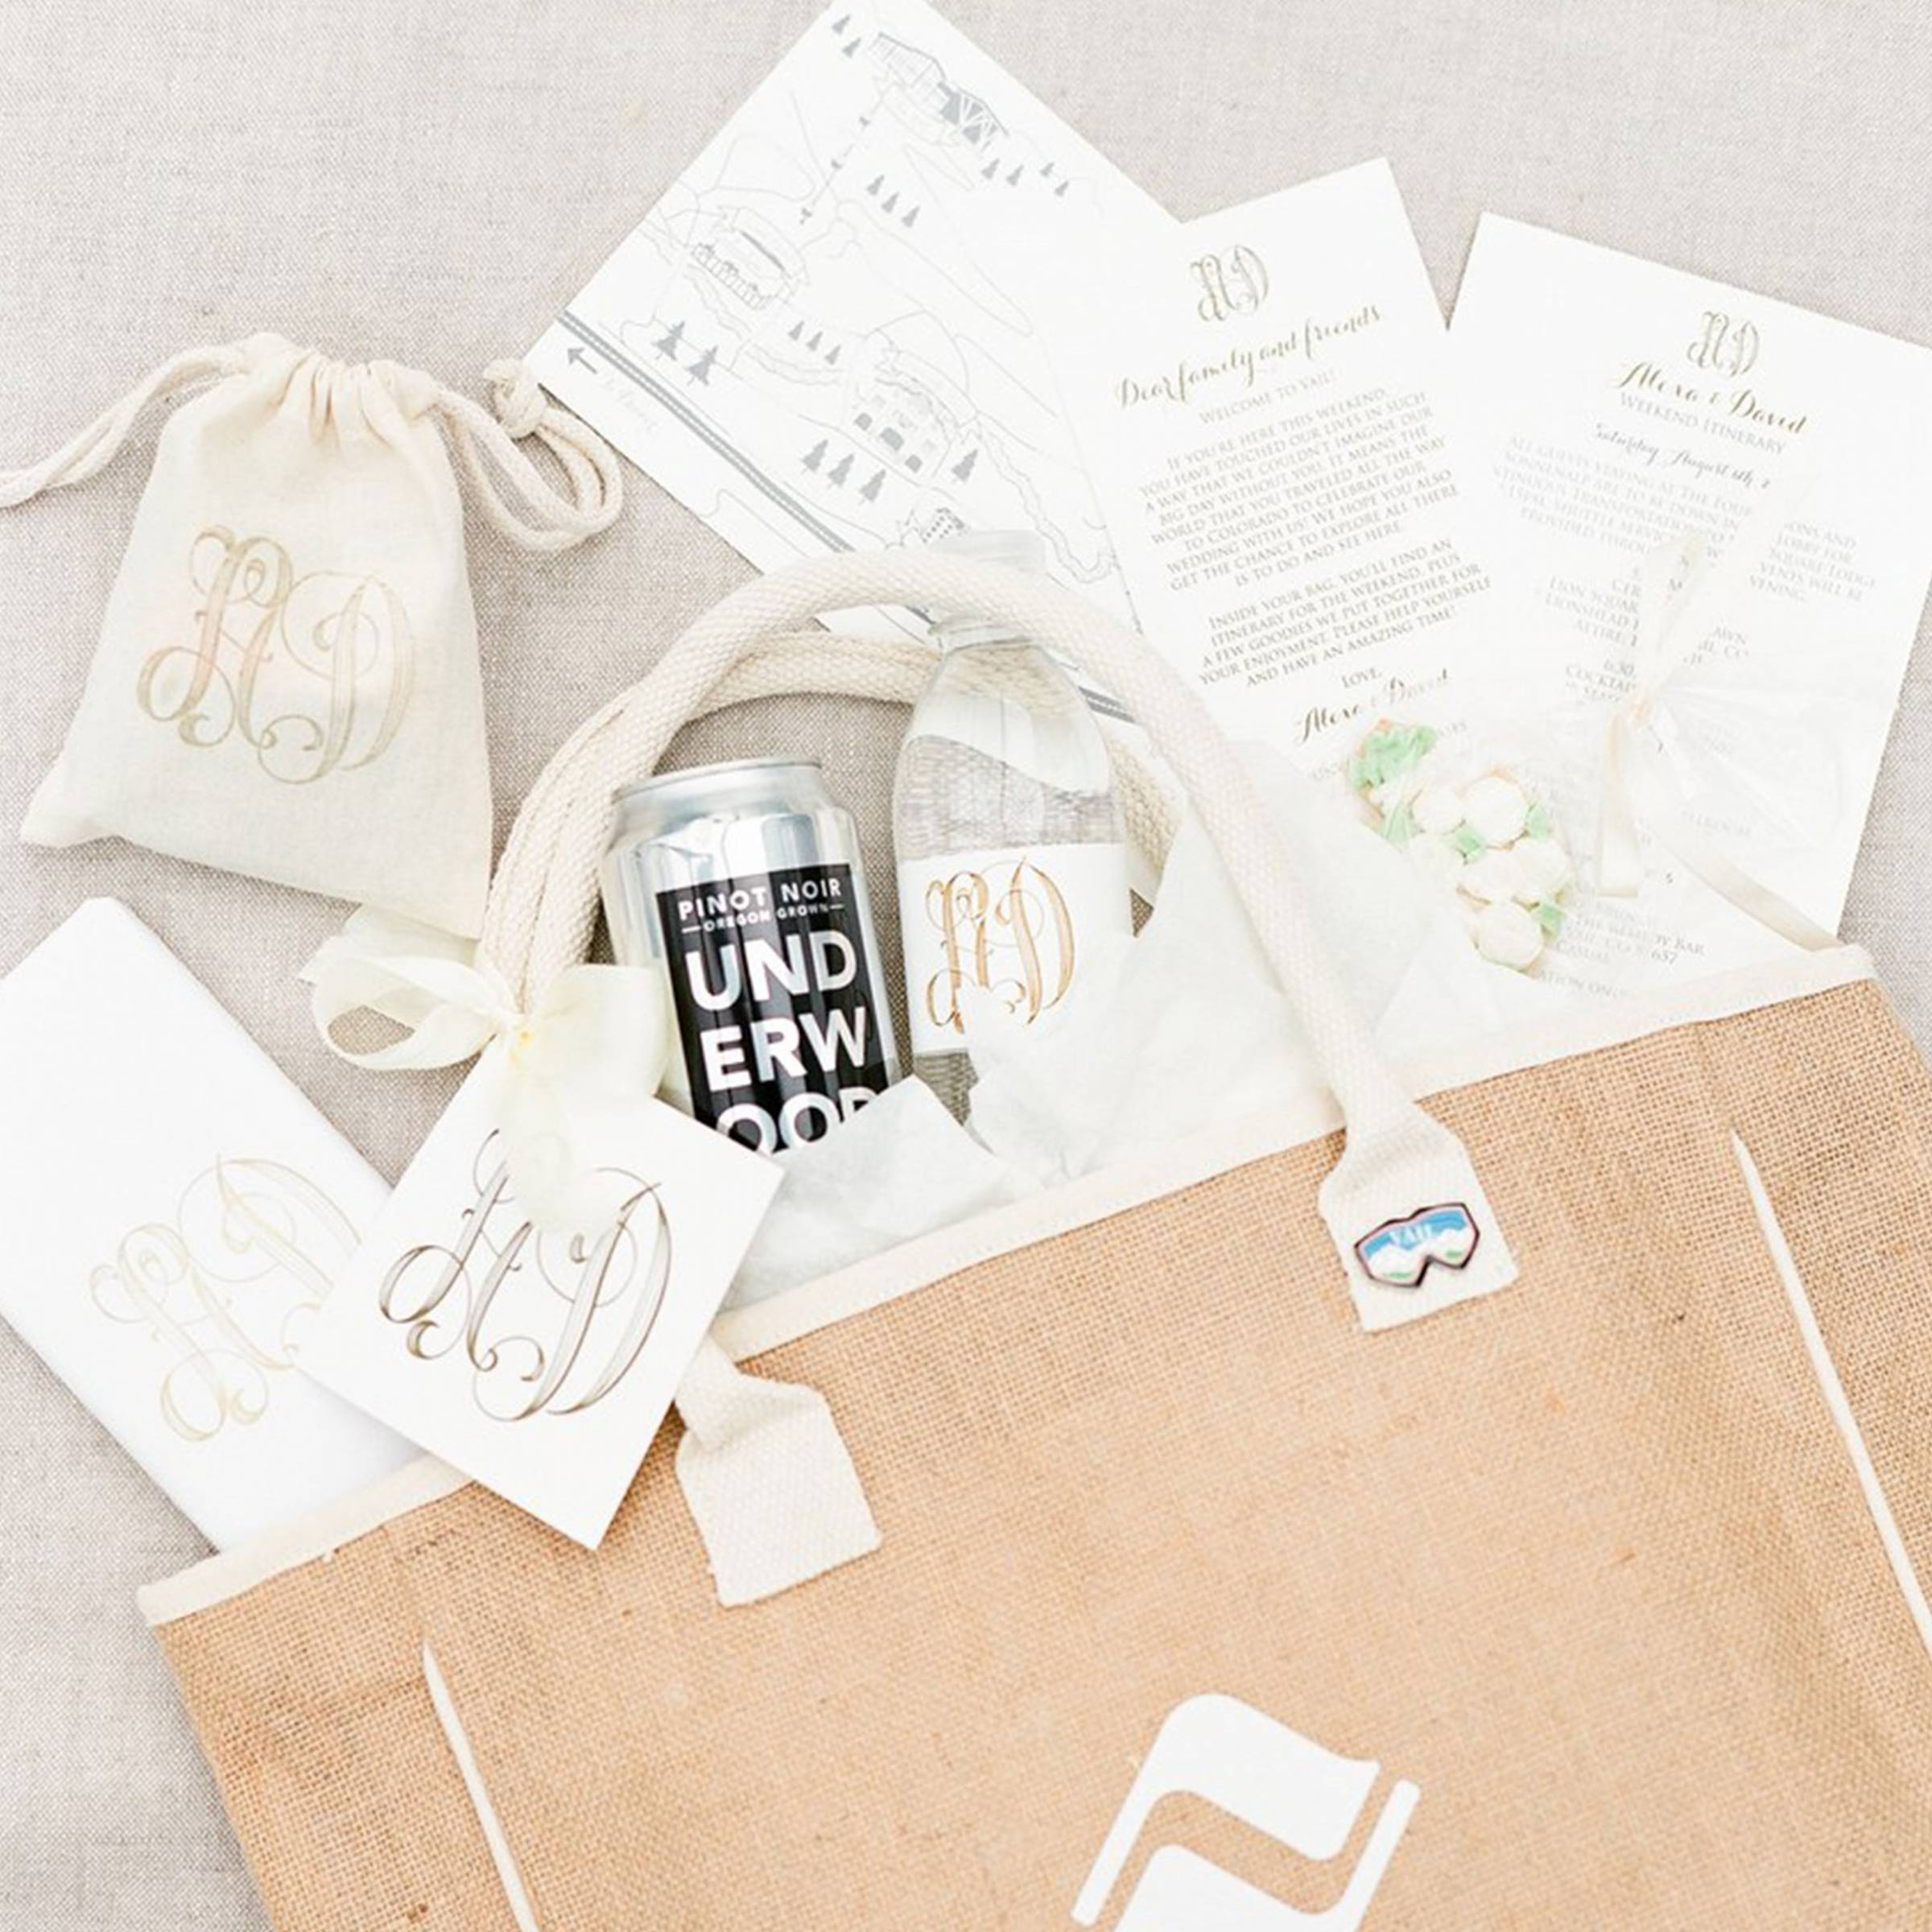 bridal party gift bag inspiration by Bundles Gift Co.